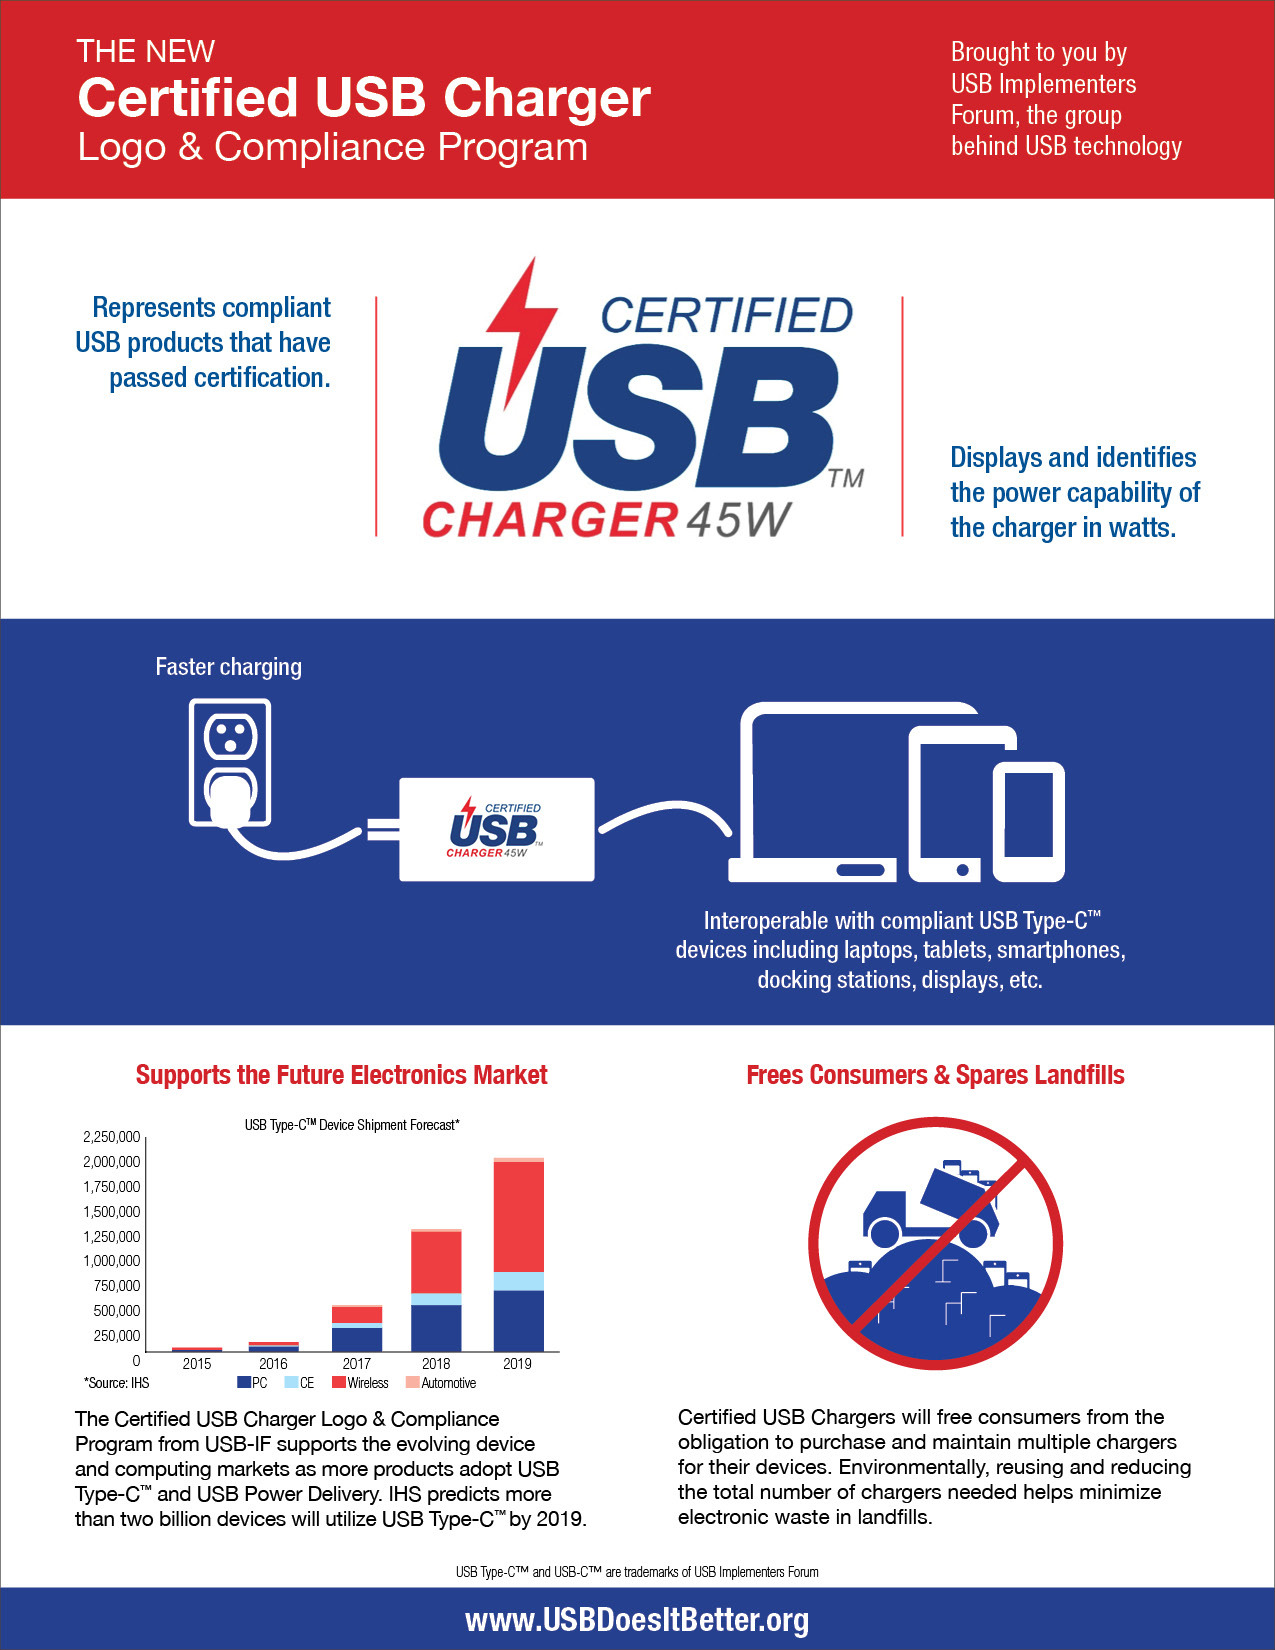 Usb If Announces A New Certified Usb Charger Logo And Compliance